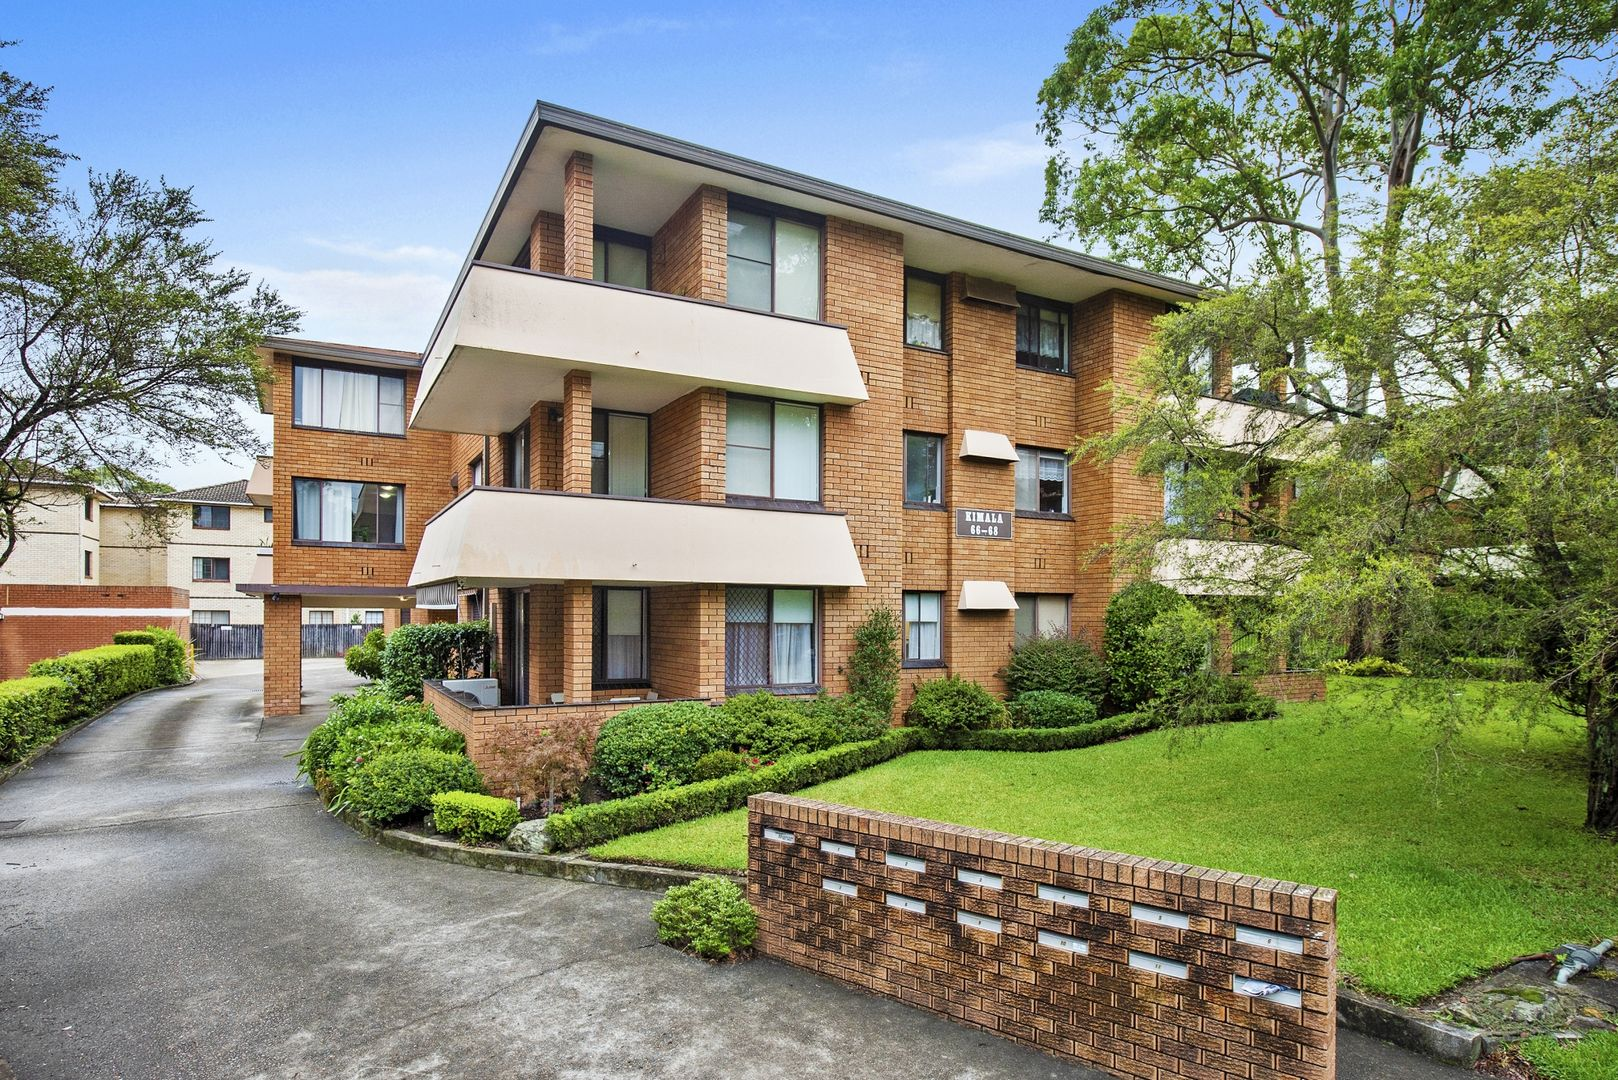 6/66-68 Florence Street, Hornsby NSW 2077, Image 0